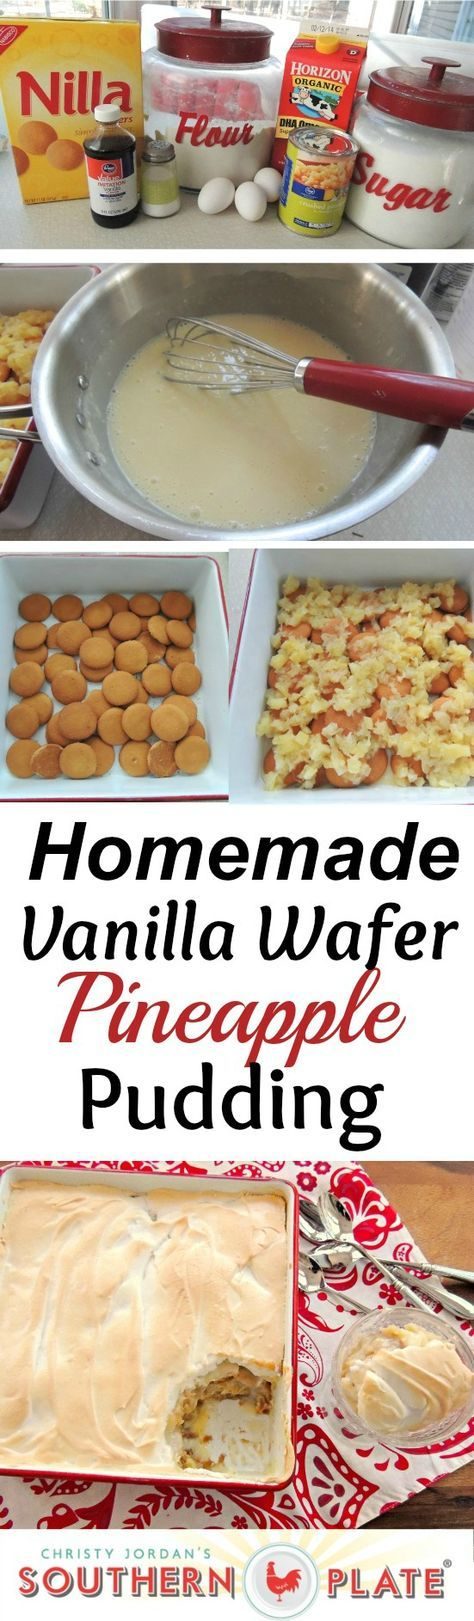 Homemade Vanilla Wafer Pineapple Pudding - this recipe shows you how EASY it is to make this old fashioned favorite! Once you make it, you'll wonder how you ever lived without it!